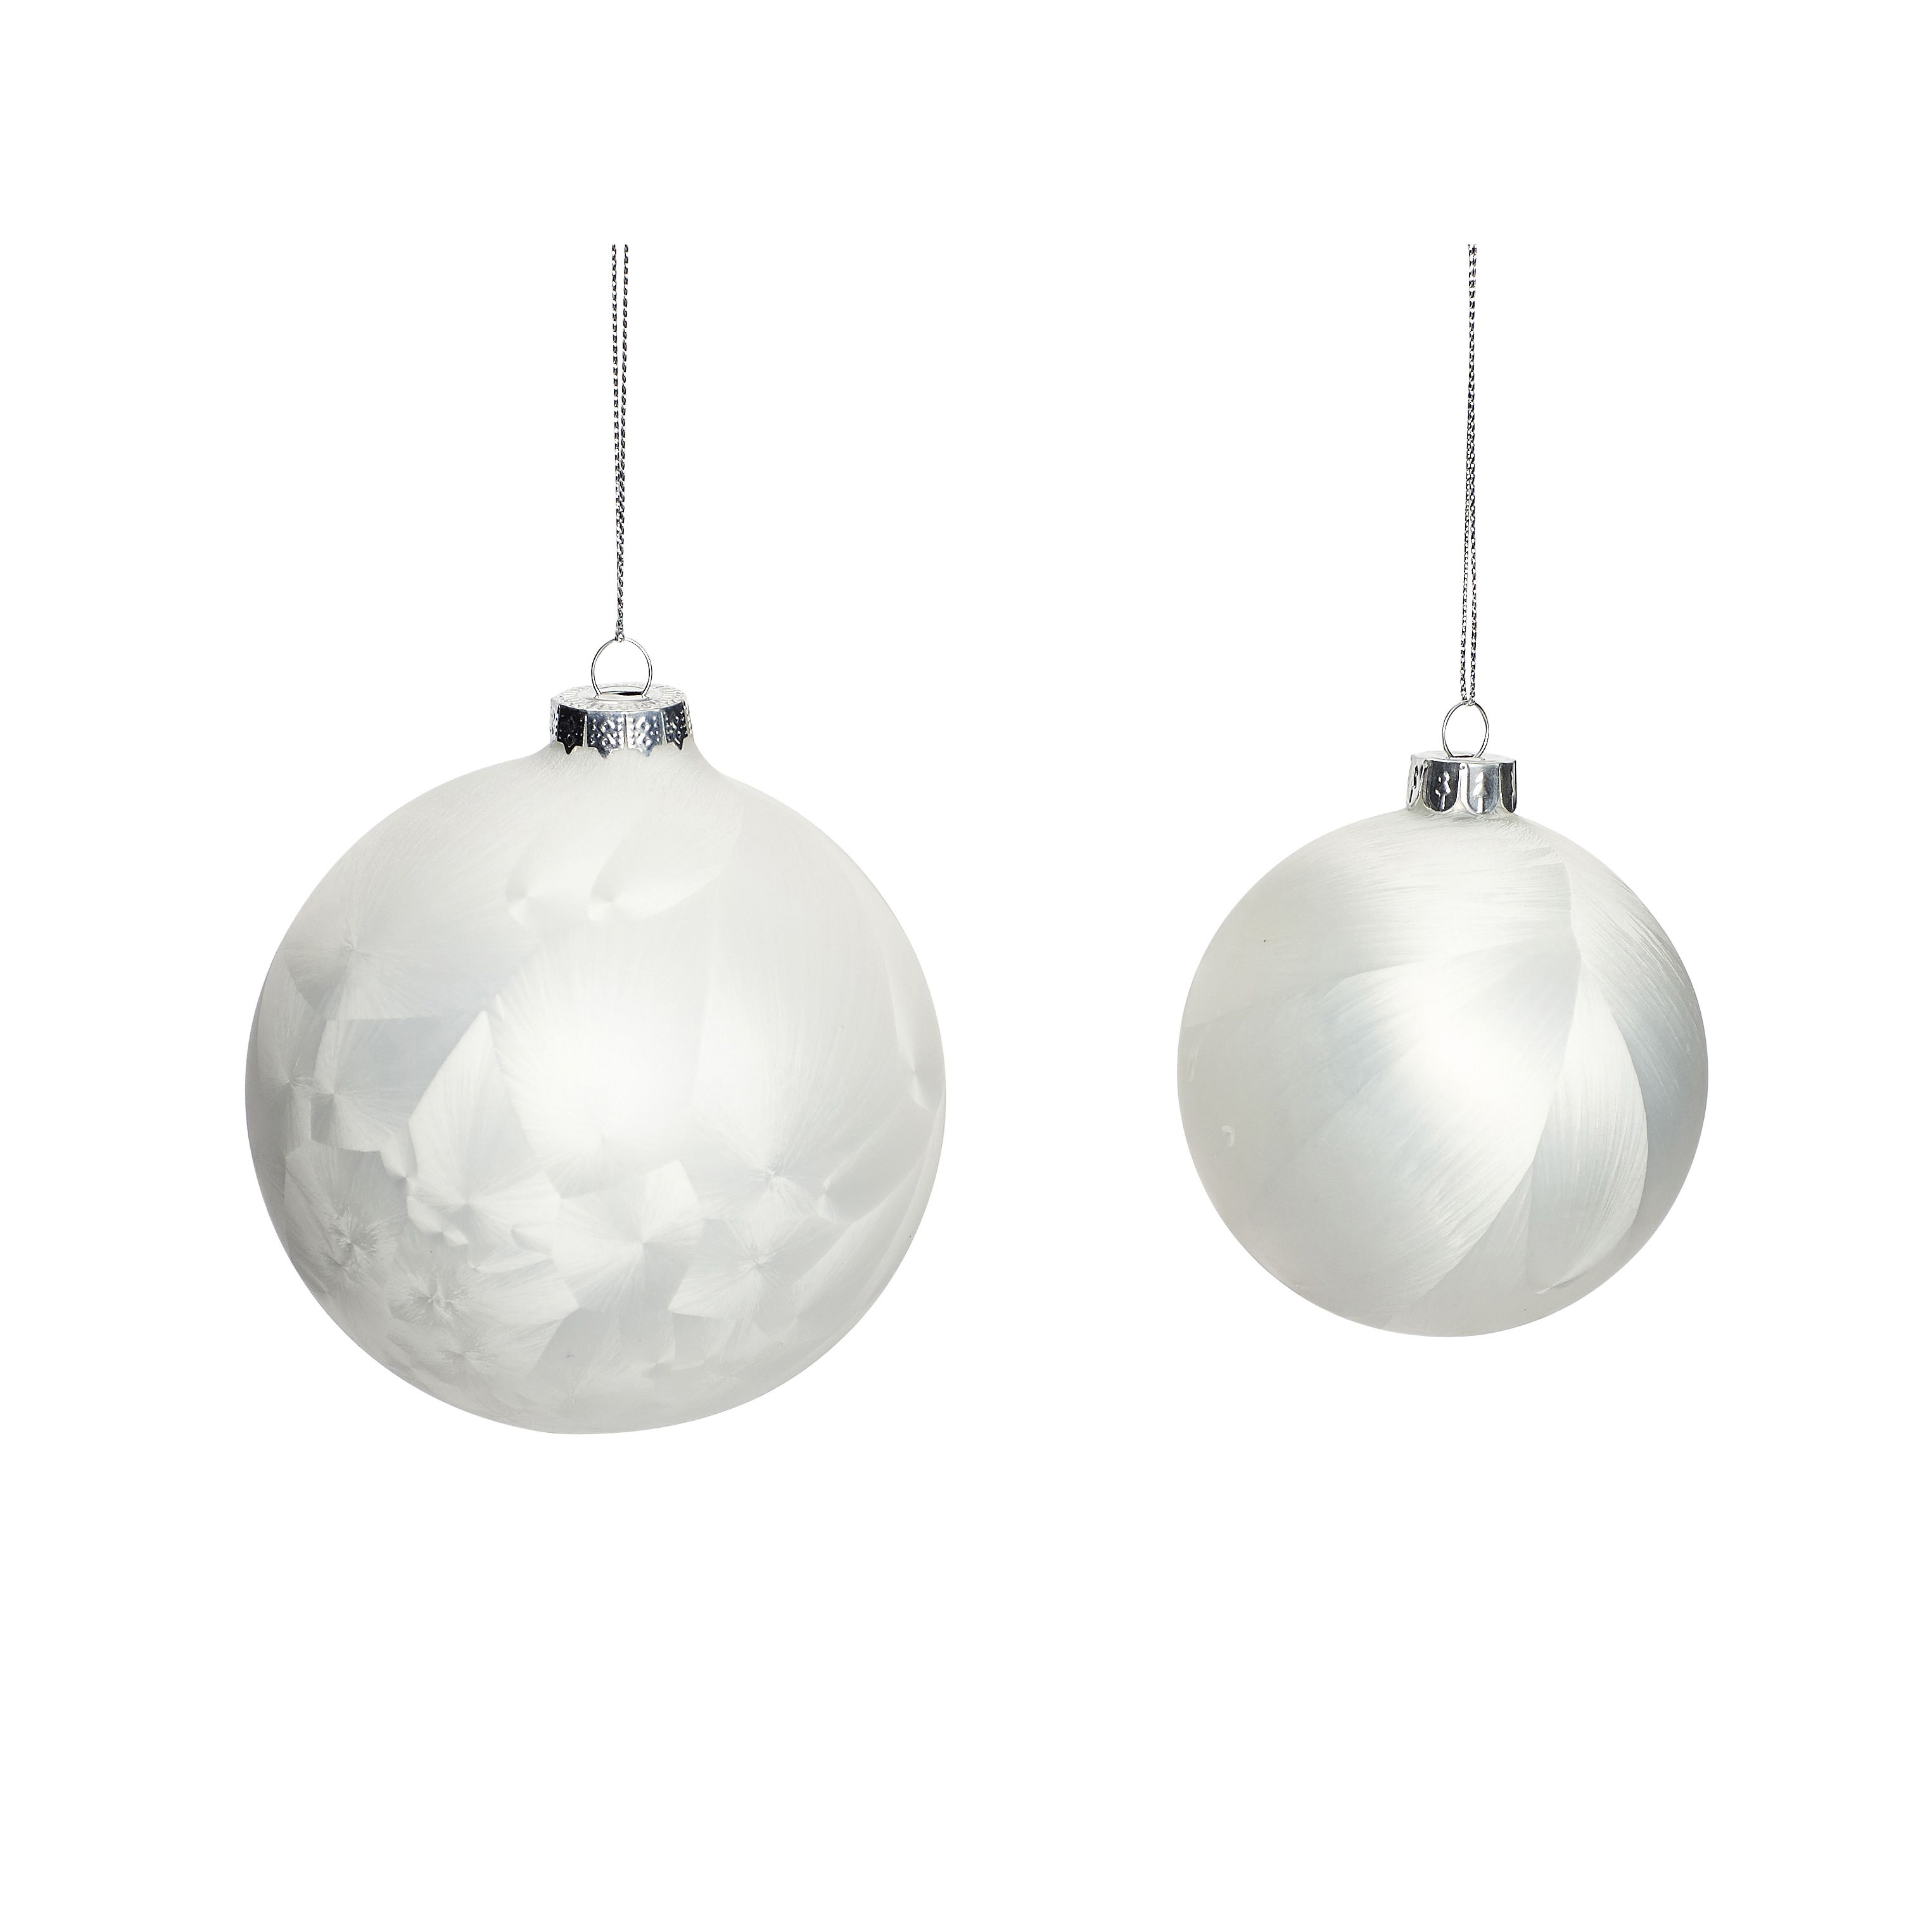 White glass Christmas balls in a set of 2. Product number: 350135 - Designed by Hübsch